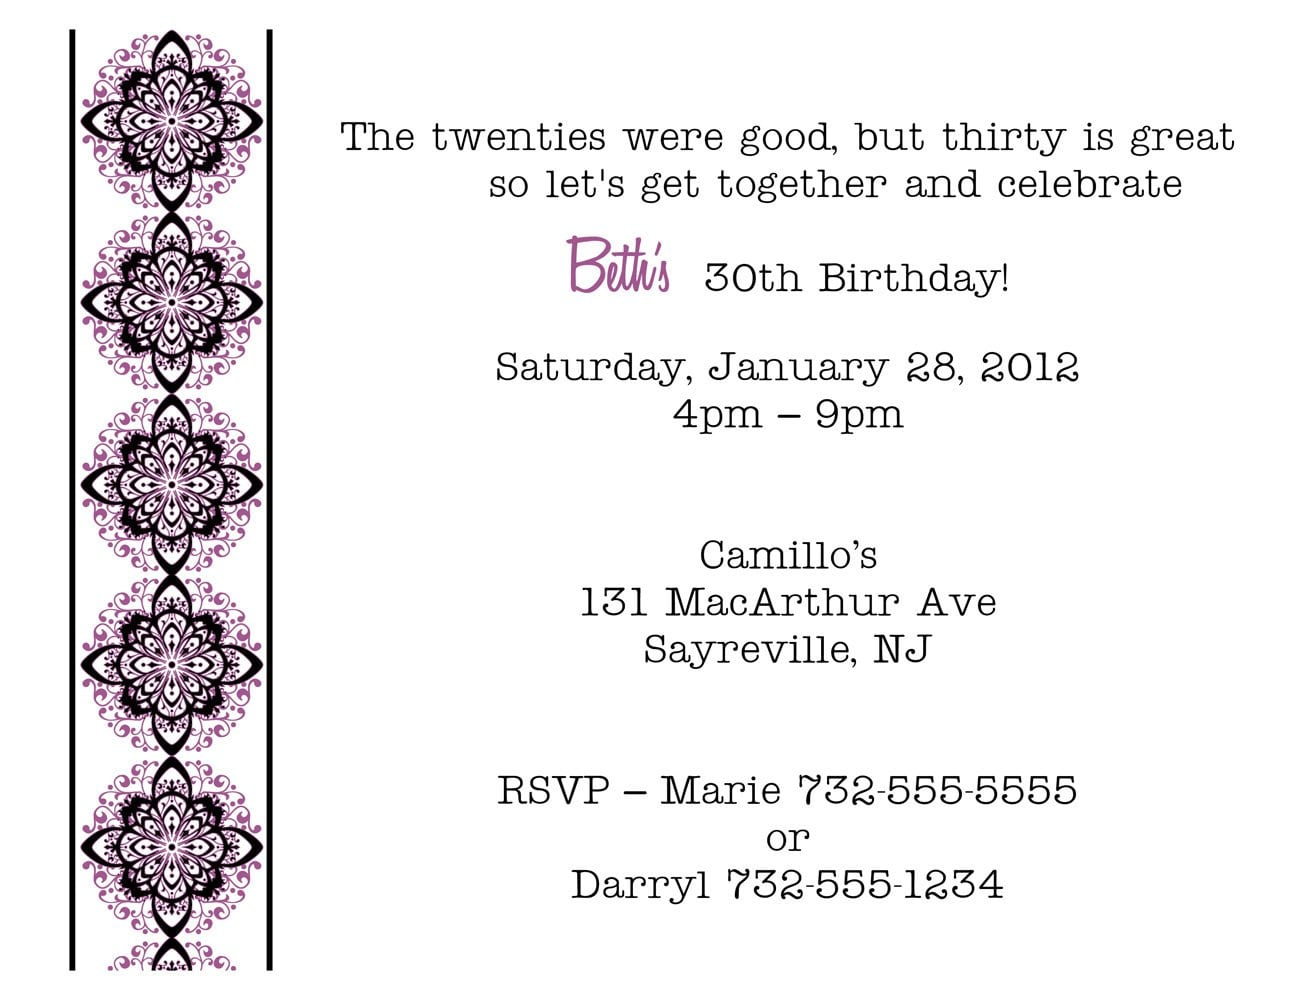 Birthday Party Invitation Text Message | View Letter